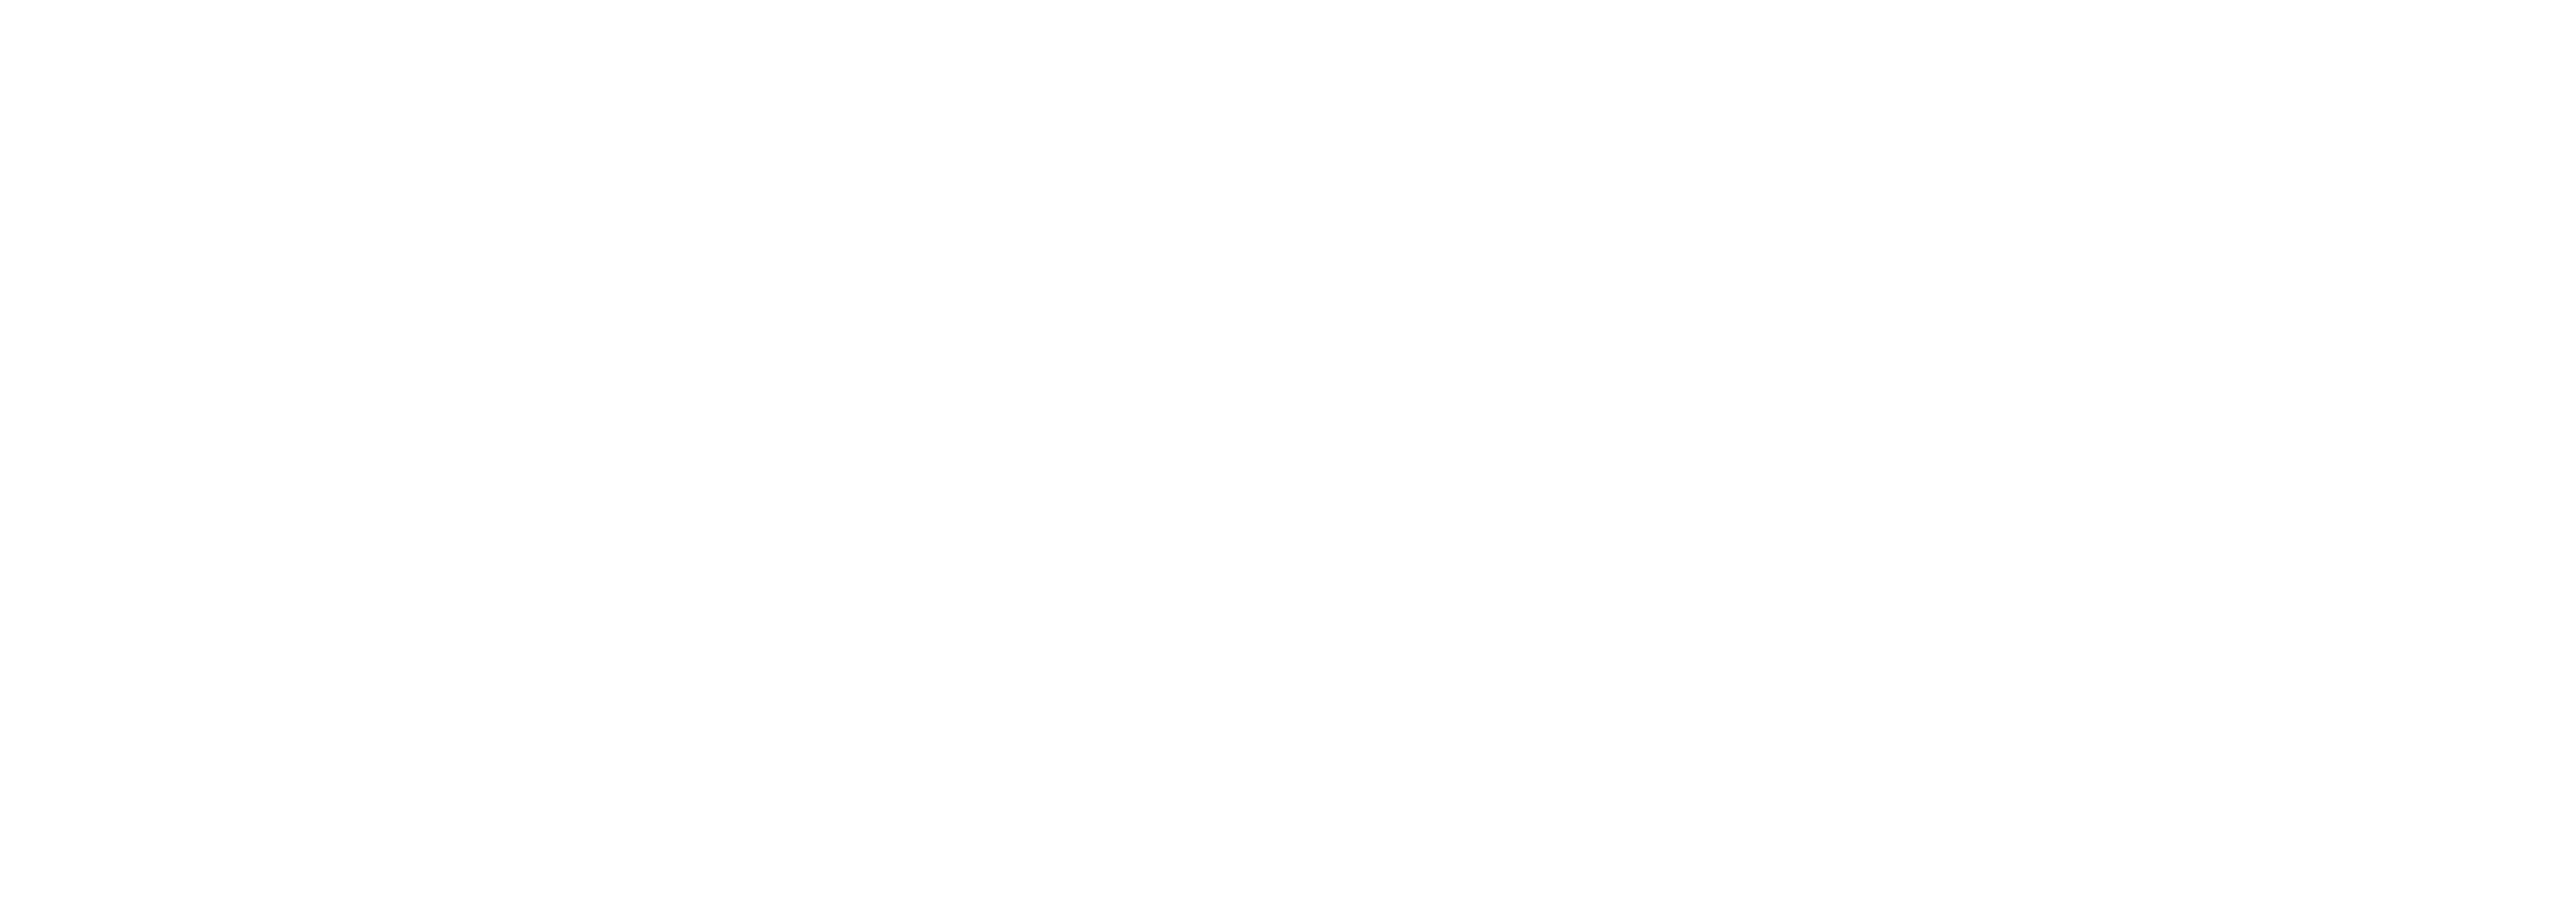 MLA logo in all white